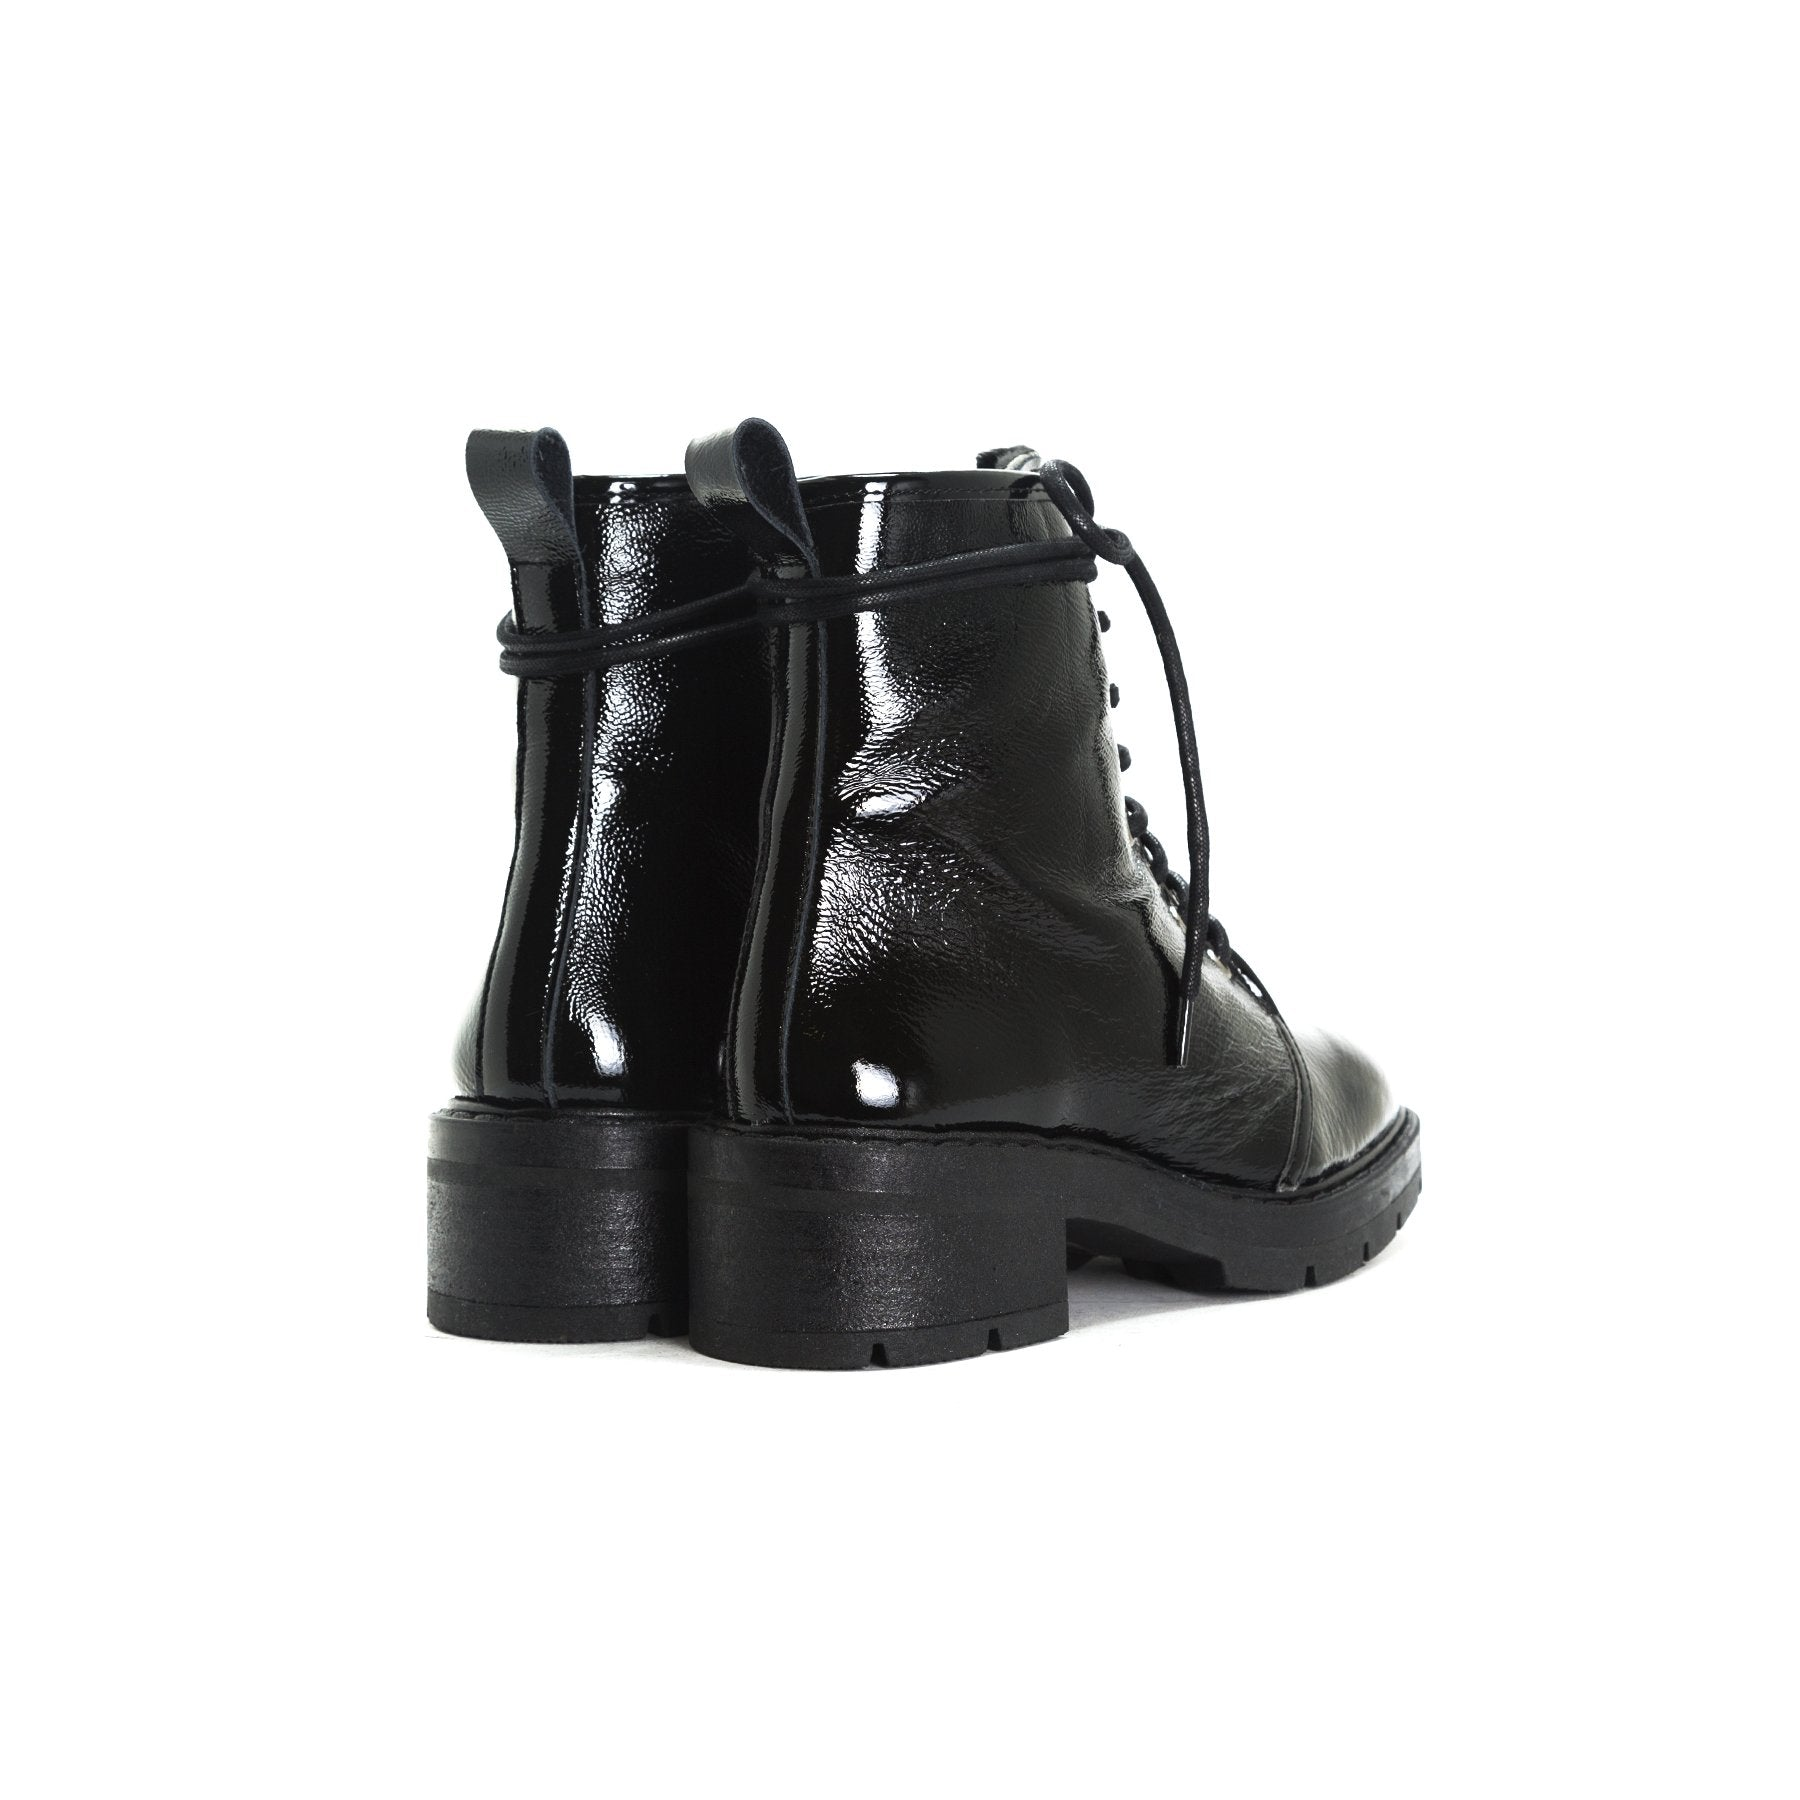 Sibble Black Naplack Ankle Boots